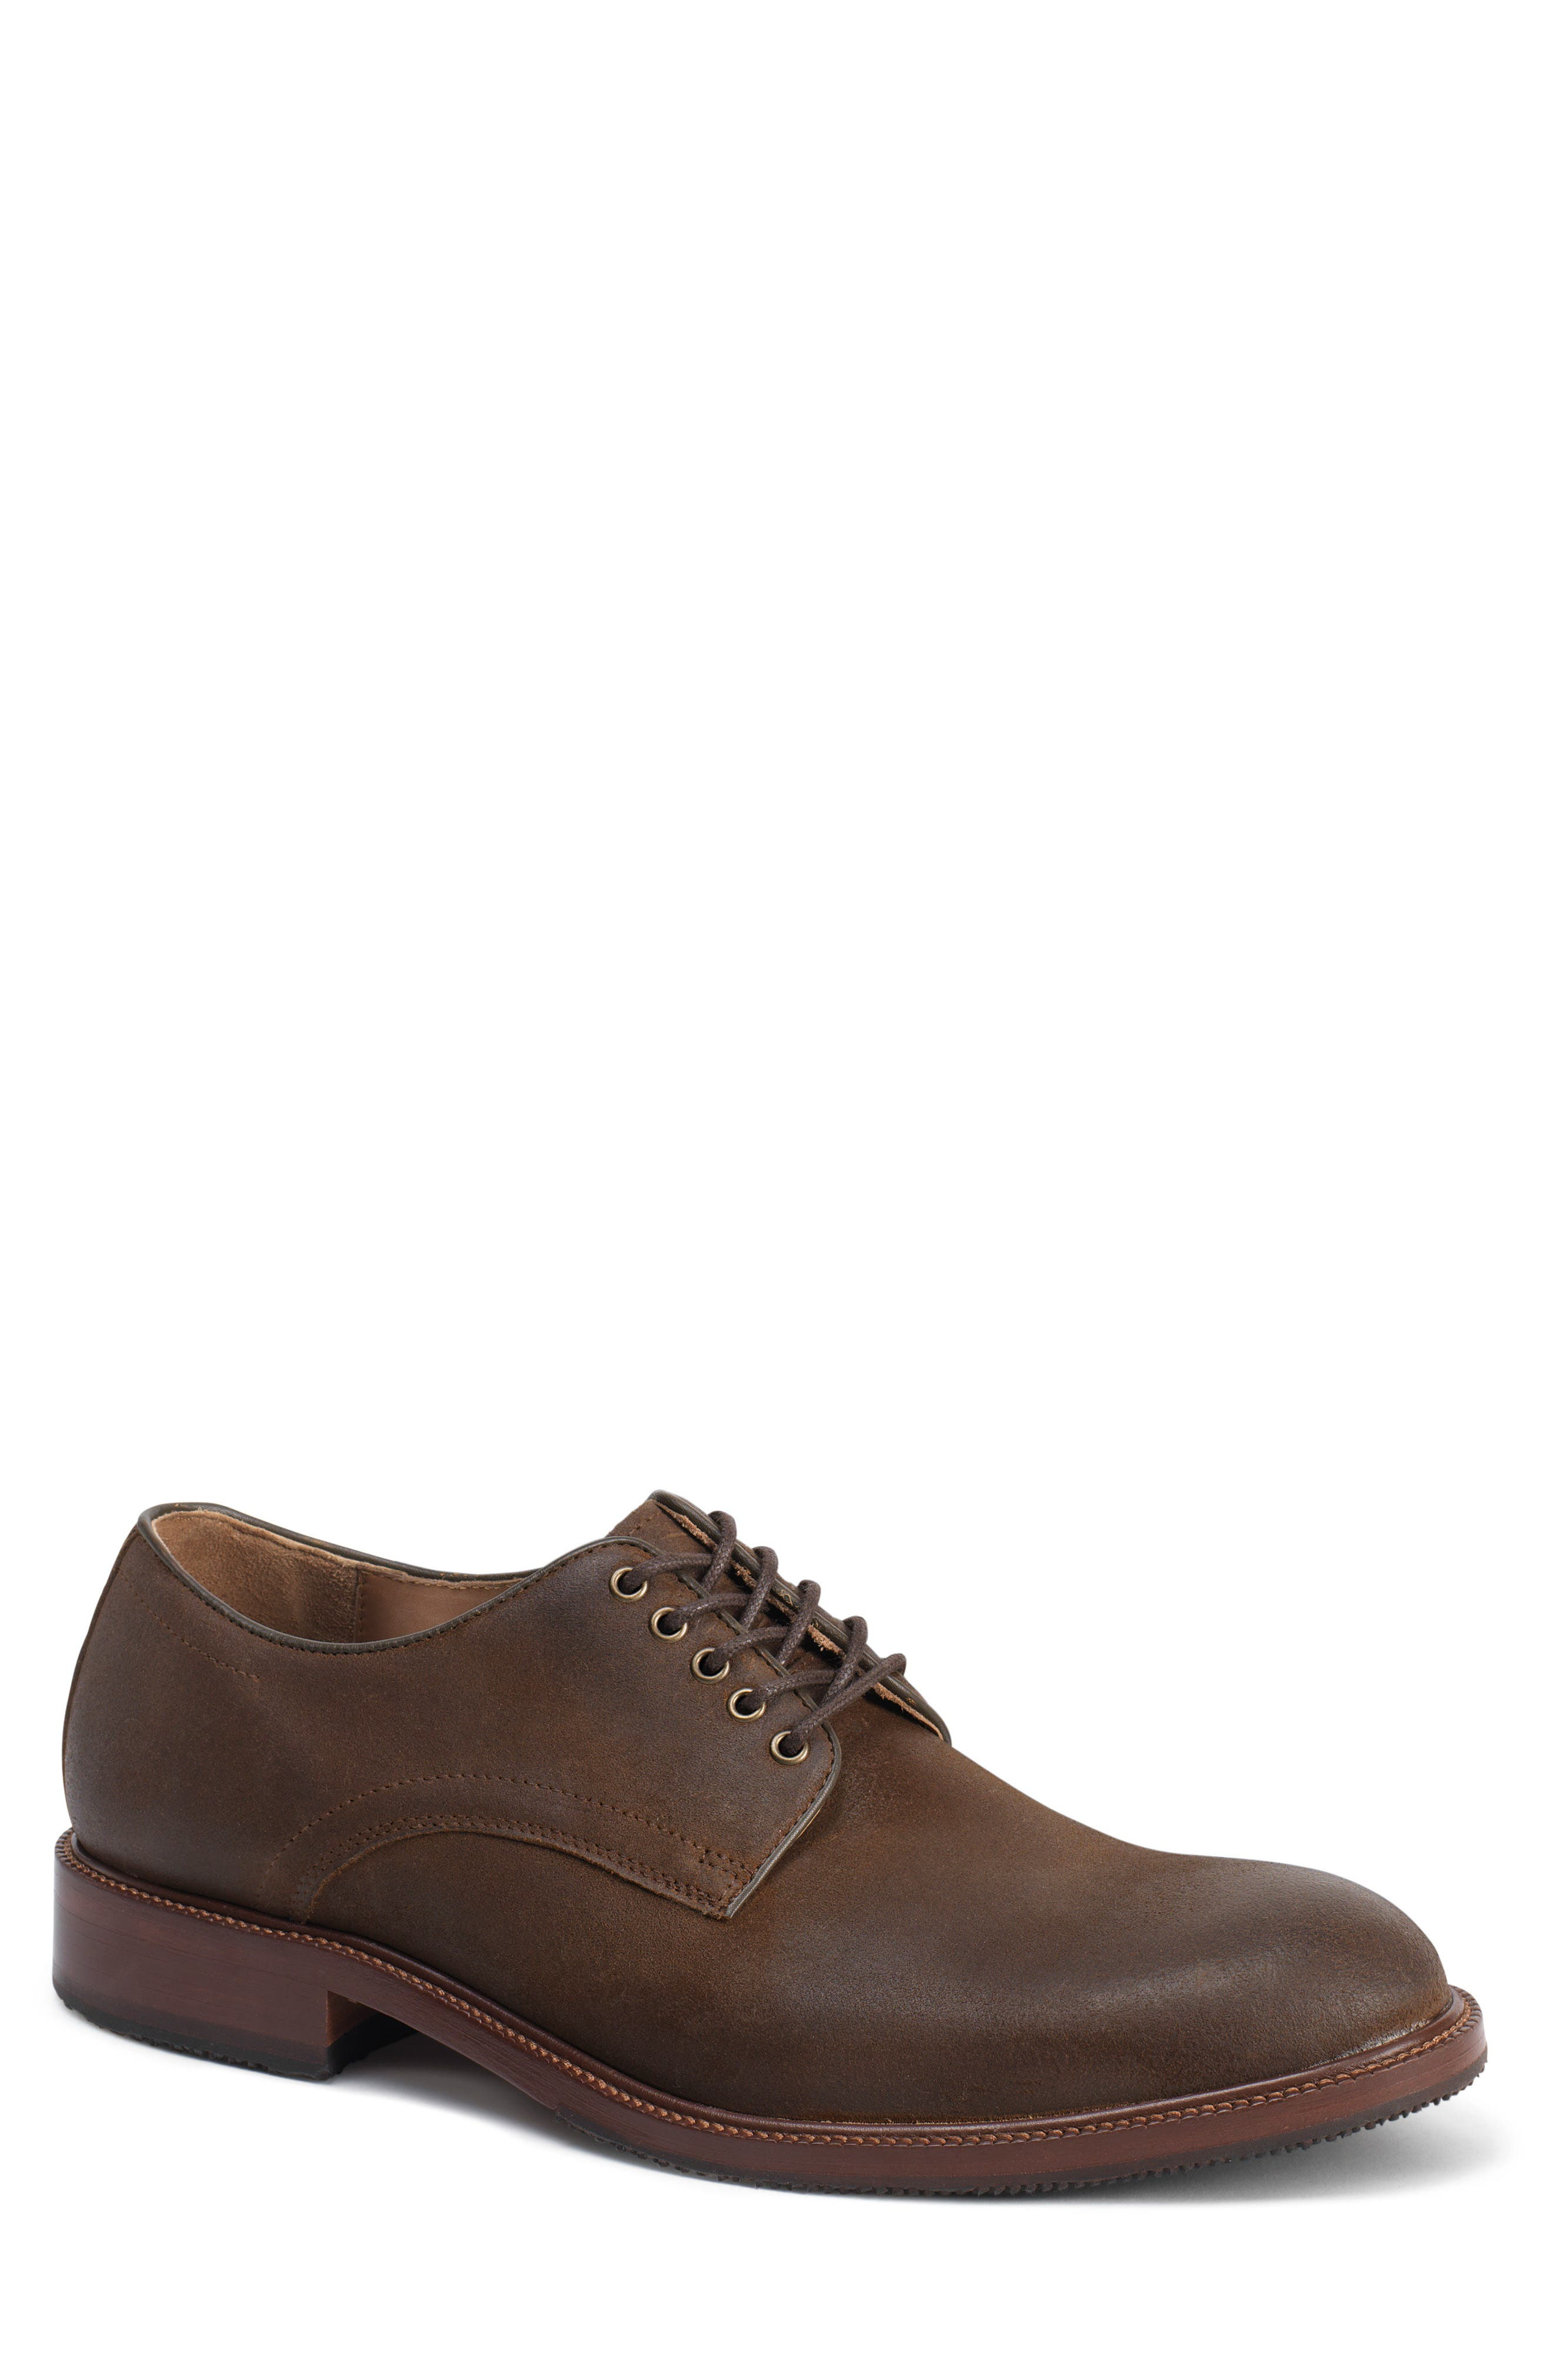 TRASK, Landry Plain Toe Derby, Main thumbnail 1, color, BROWN WAXED SUEDE